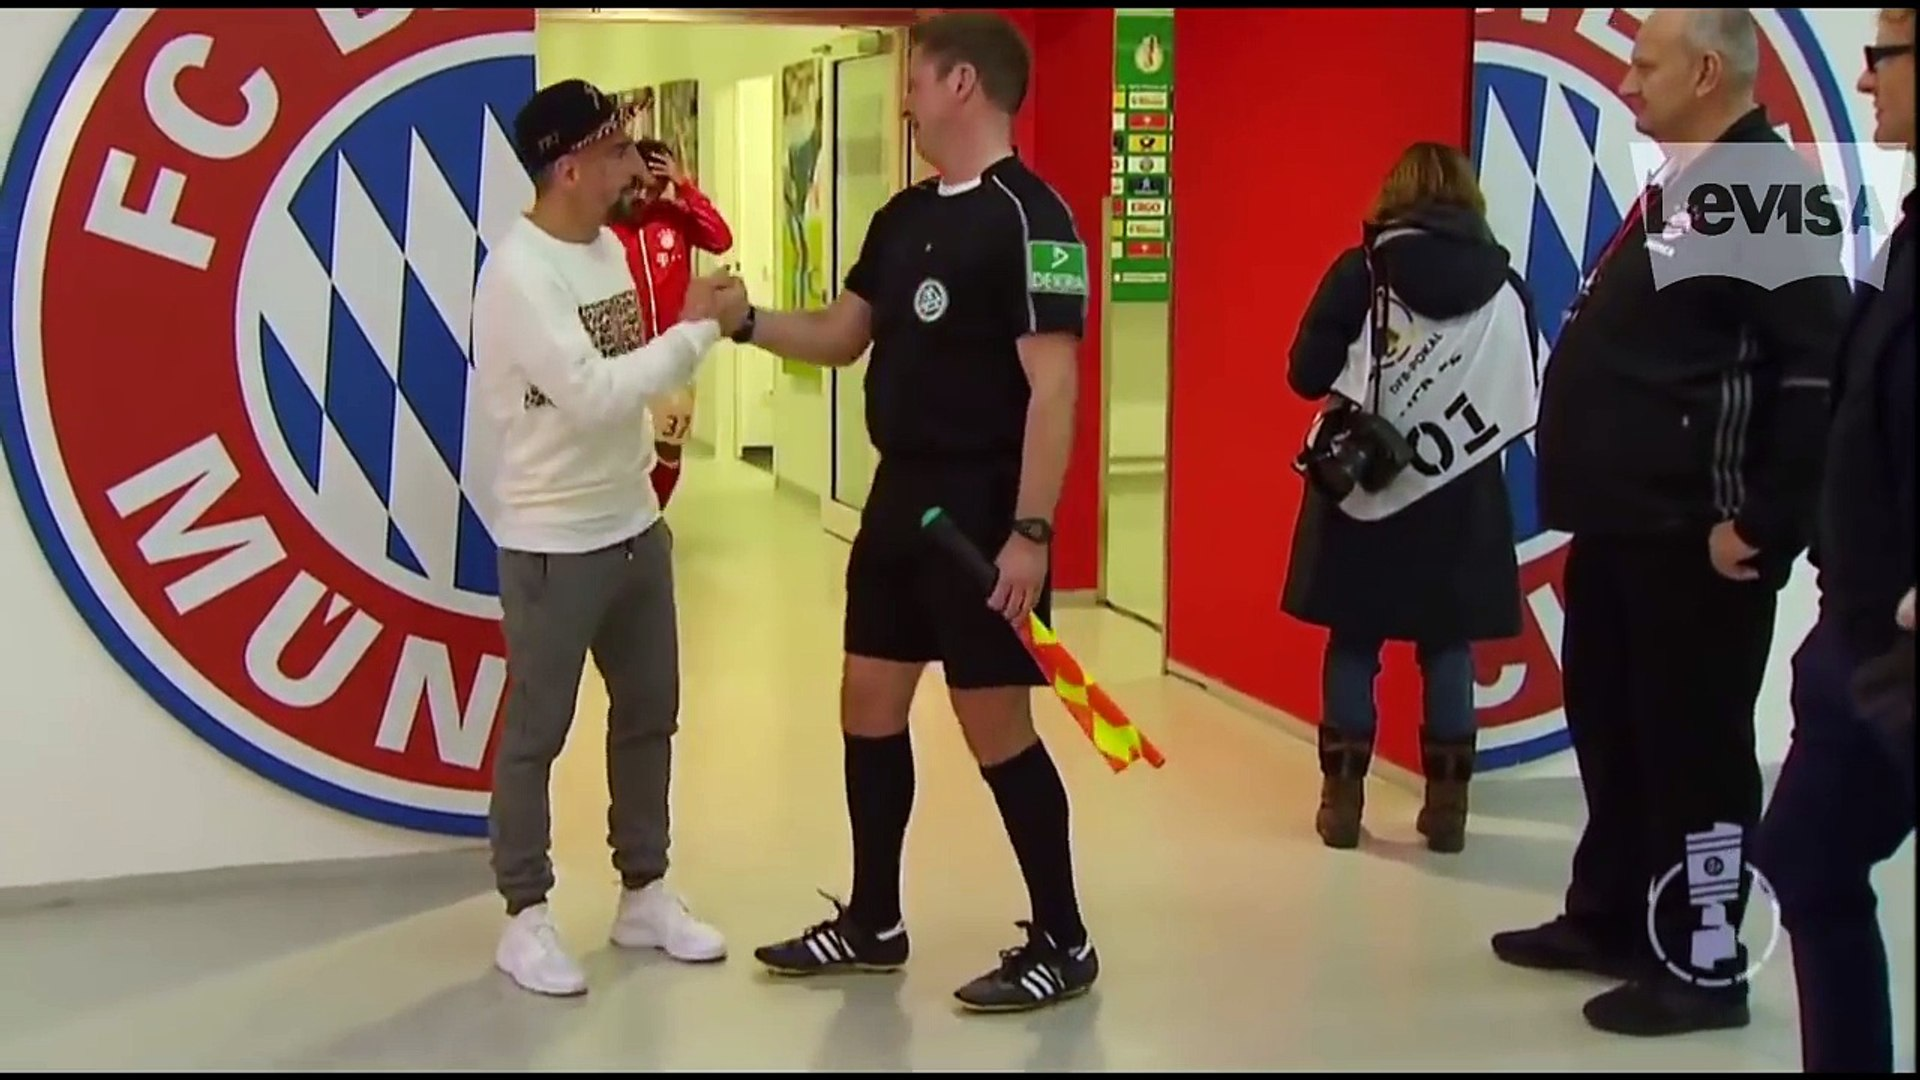 Frank Ribery Crazy Or Not- ●Funny Moments and Bloopers [Funniest Moments, French Joker] lustig